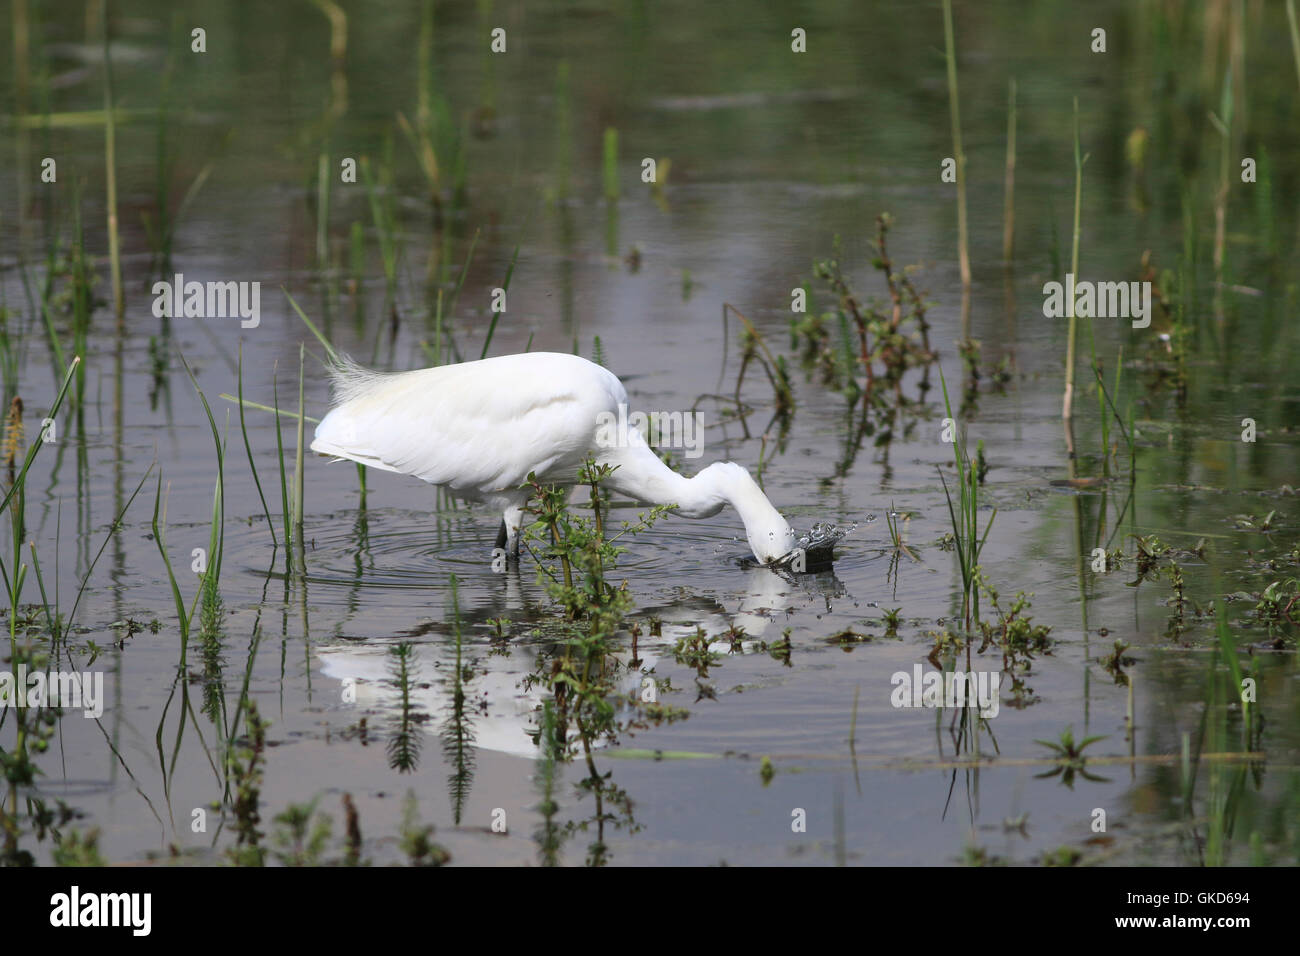 Little egret, Egretta garzetta, small, elegant white heron with head underwater - Stock Image